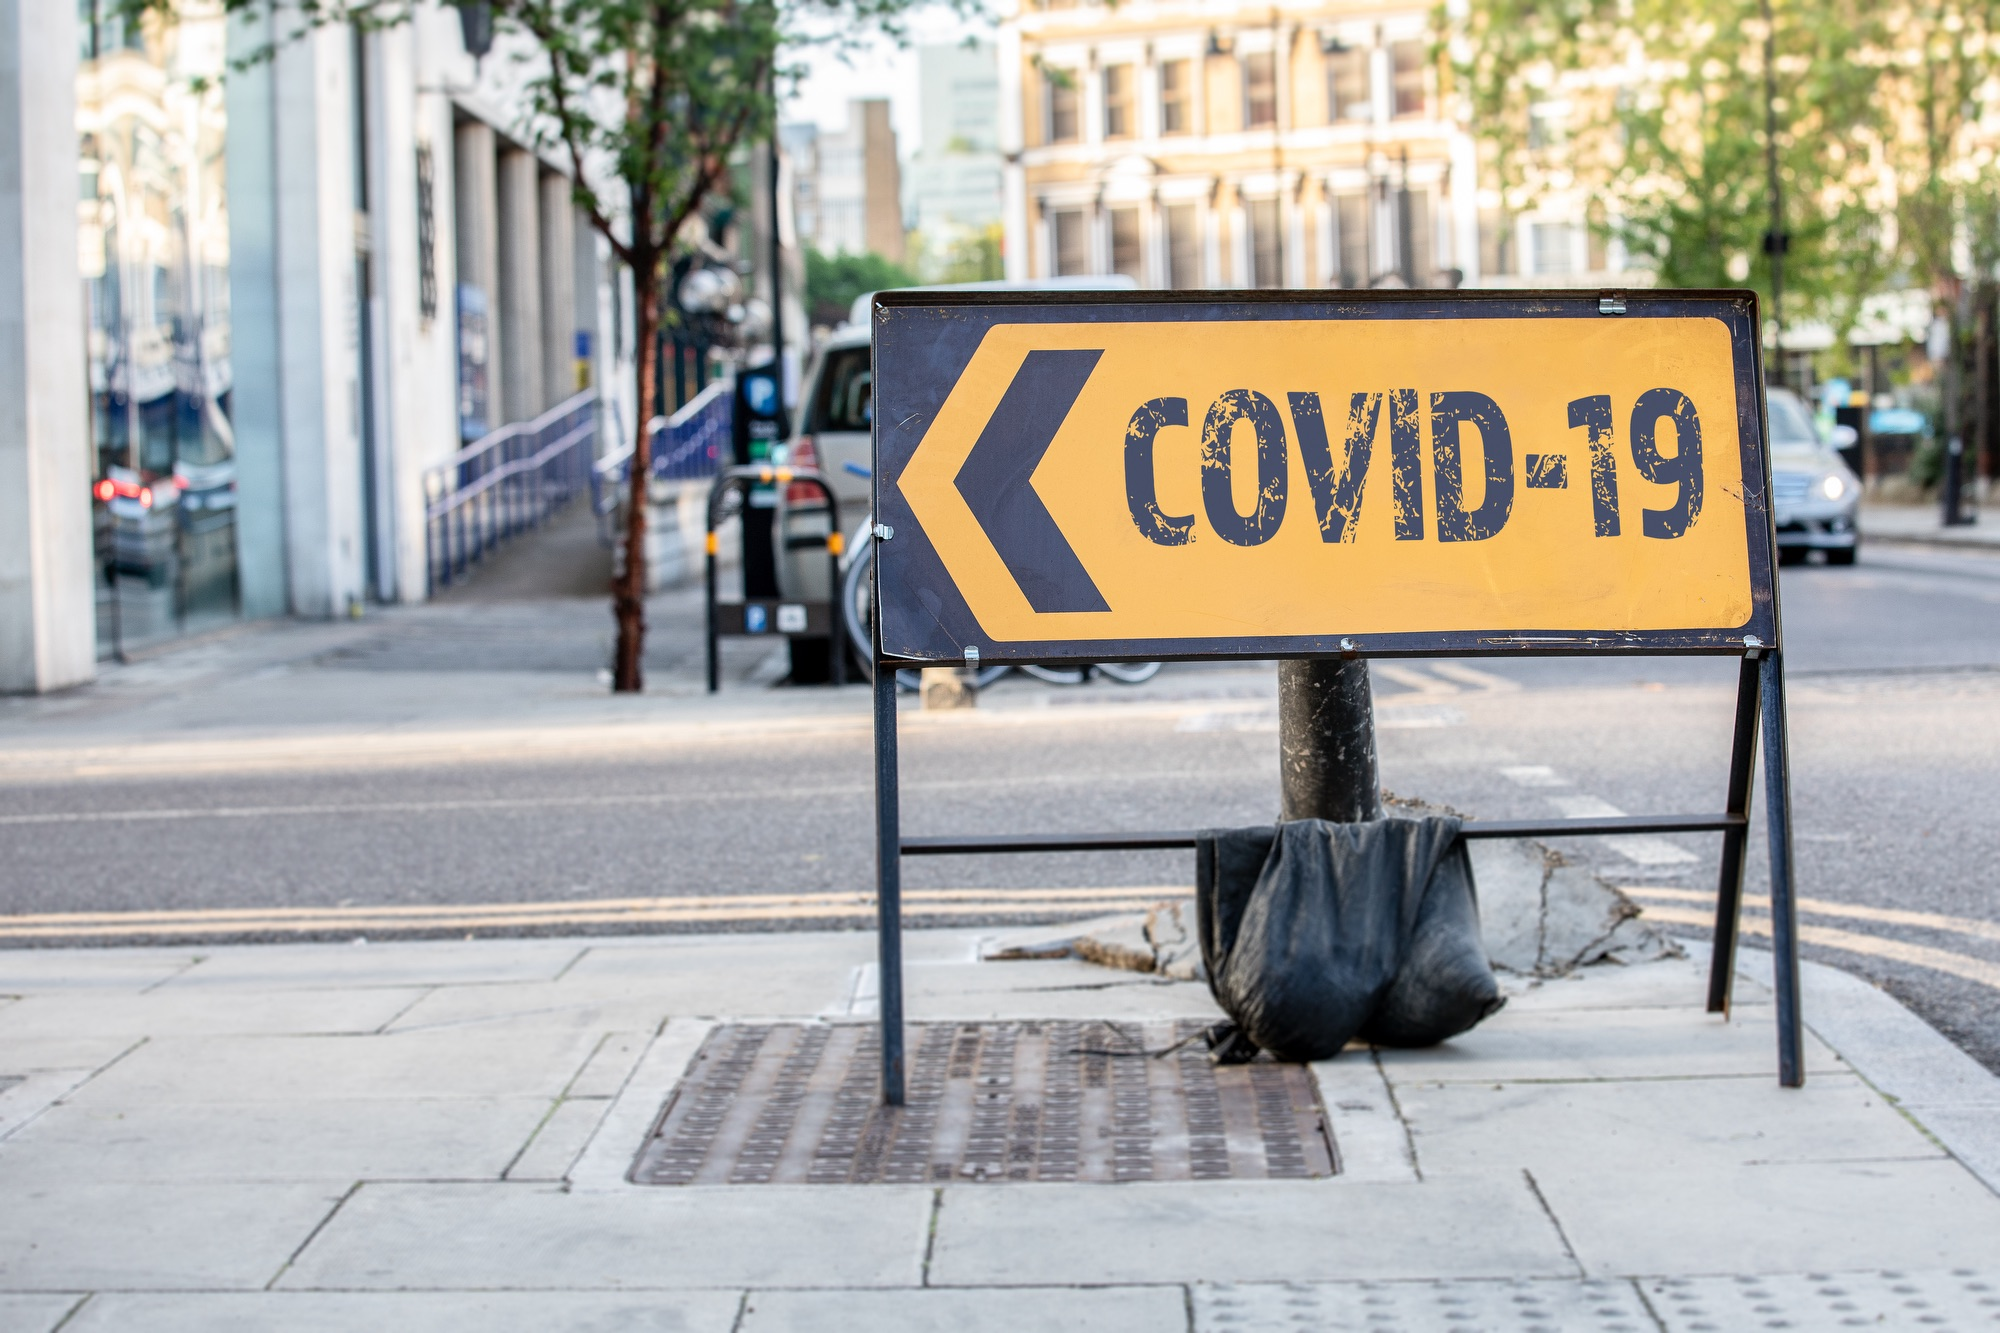 SS_COVID-19 Coronavirus - outbreak of desease that was first reported from Wuhan, China. Yellow diversion road sign in a UK city street